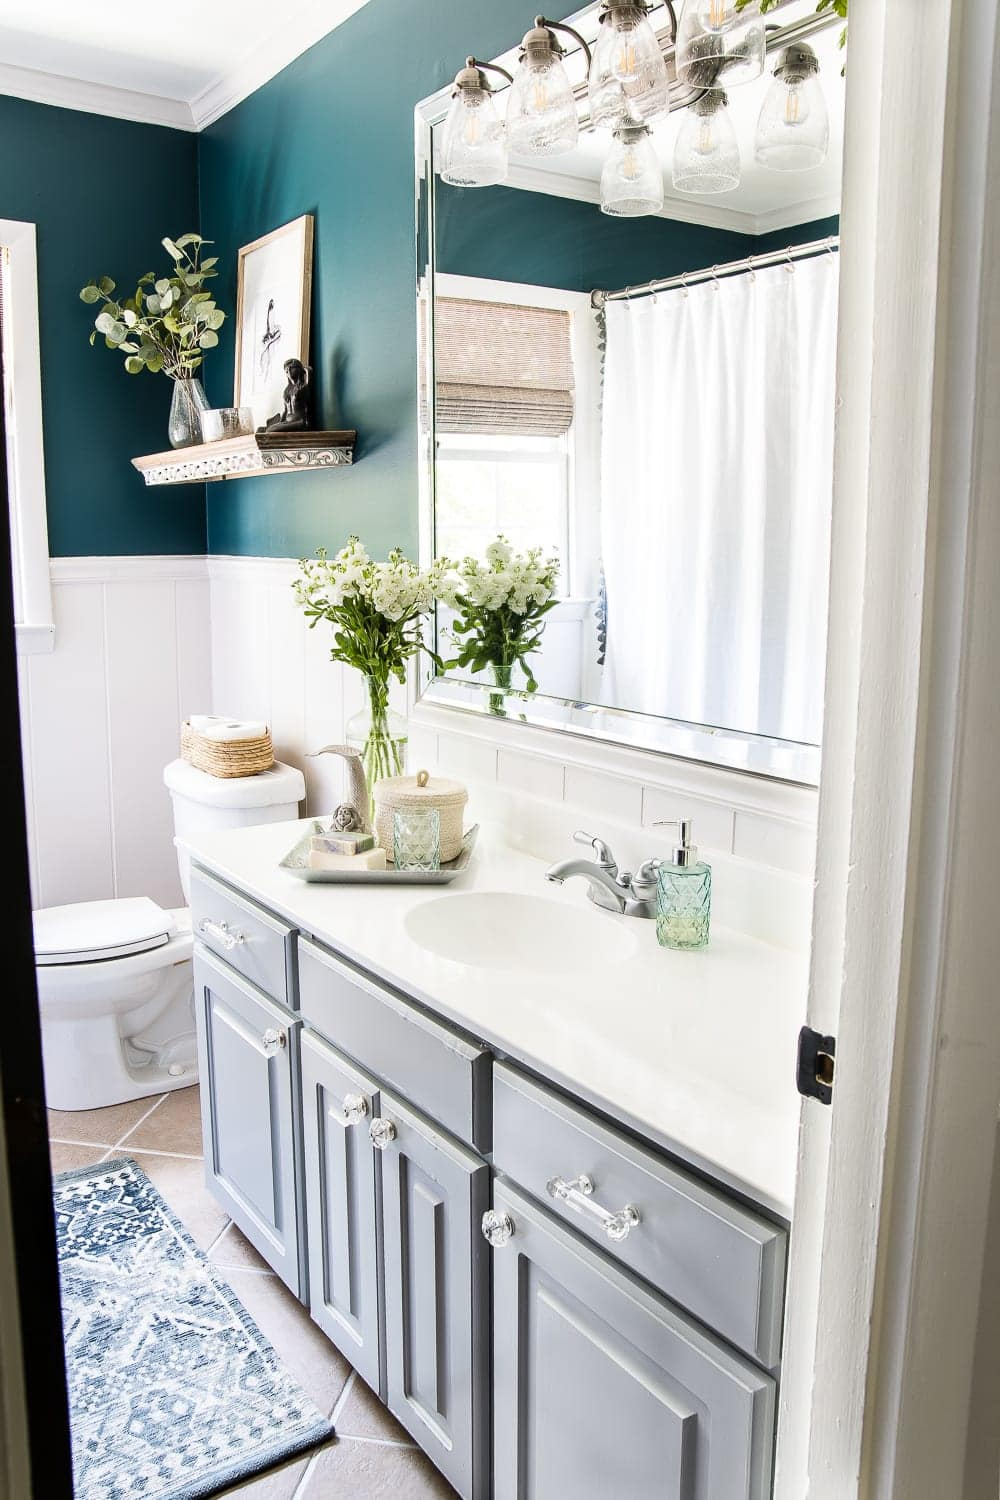 How To Paint A Sink Countertop Tub And Shower For 100